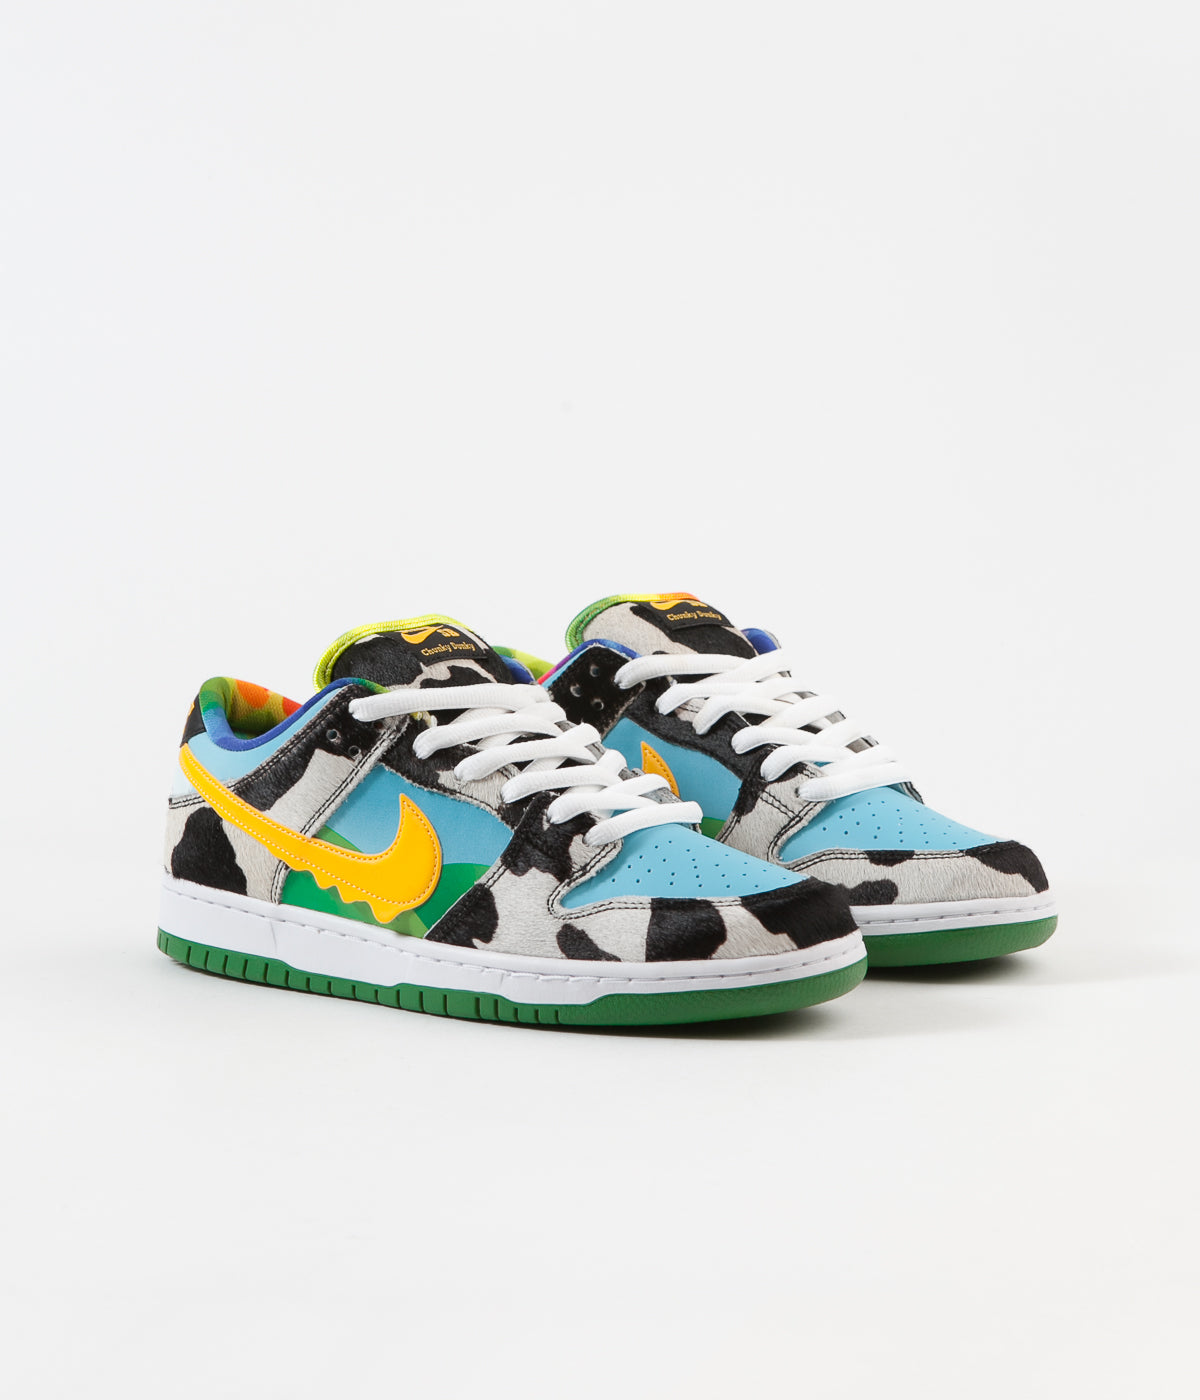 Nike SB x Ben & Jerry's 'Chunky Dunky' Dunk Low Pro Shoes - White / University Gold - Lagoon Pulse - Black